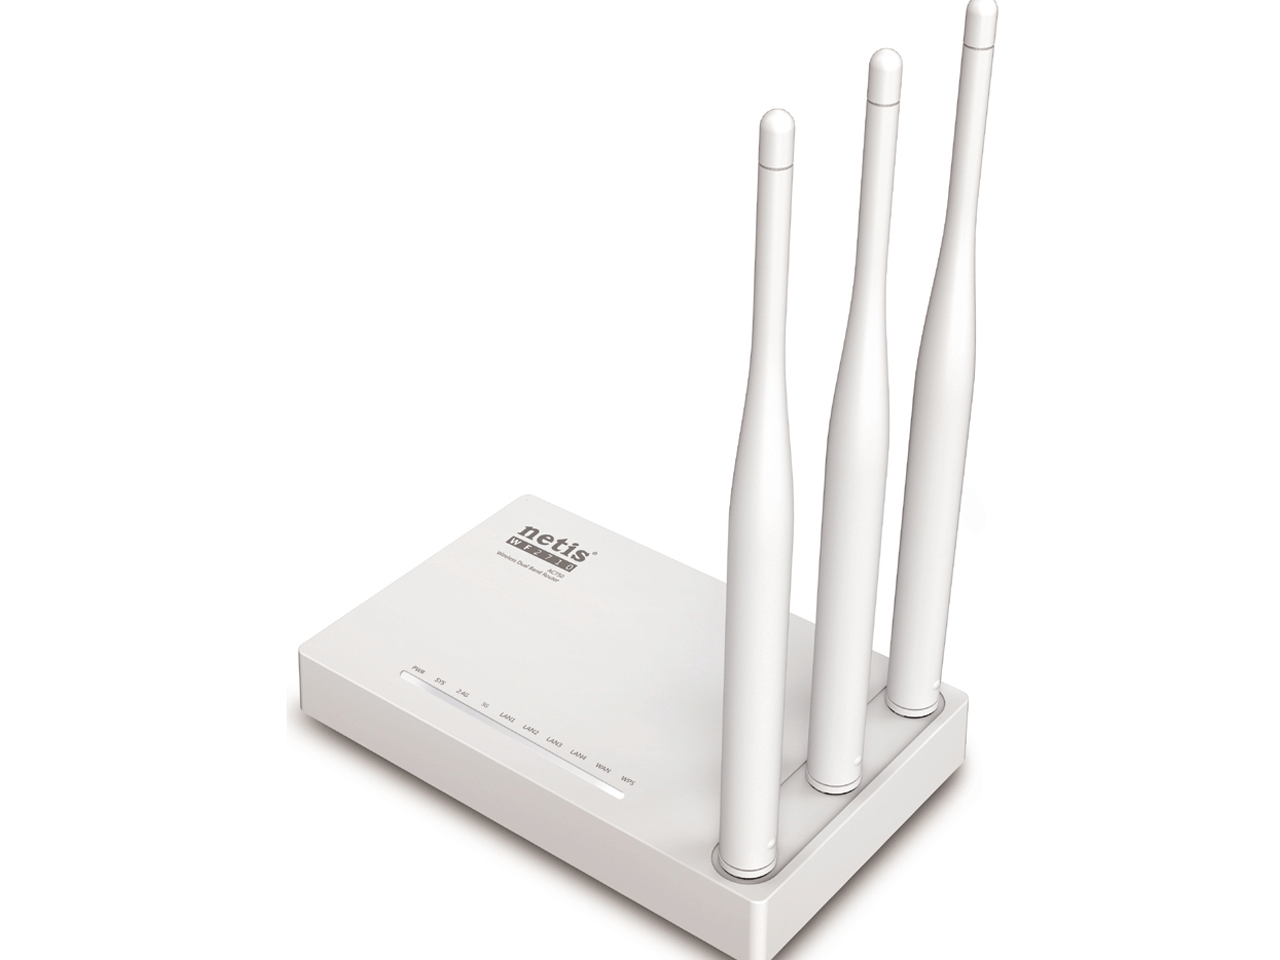 NETİS WF2710 AC750 WİRELESS DUAL BAND ROUTER